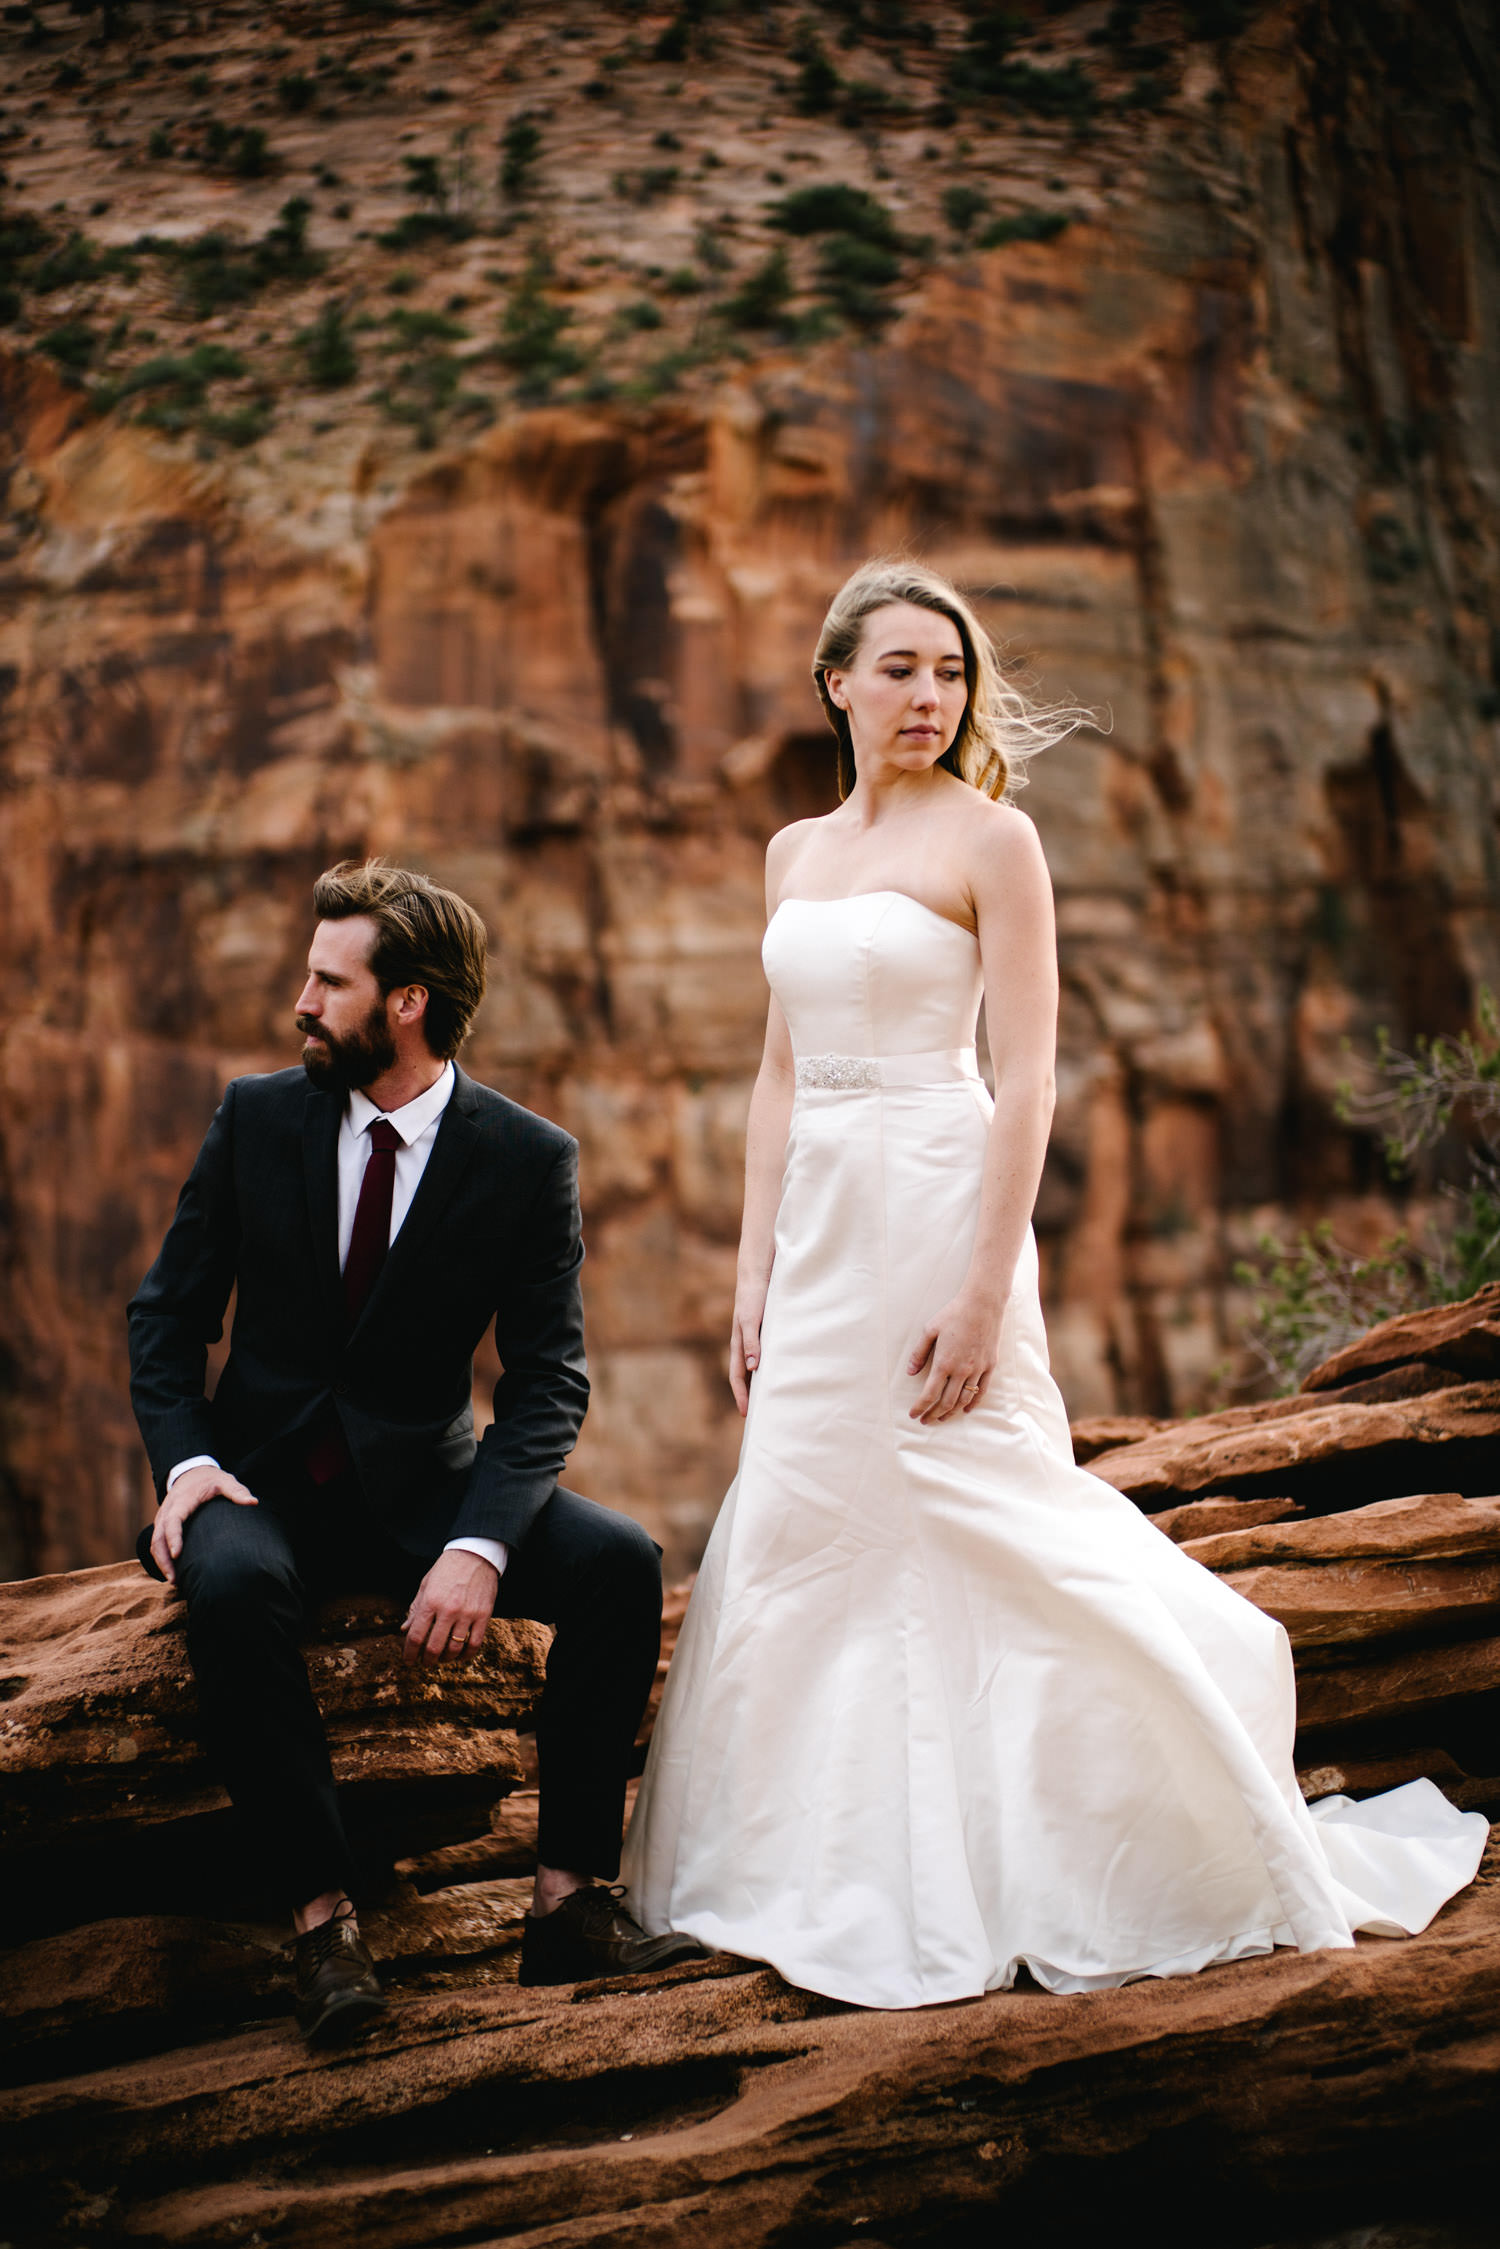 zionnationalpark_utah_destinationweddingphotographer_austendiamondphotography-4